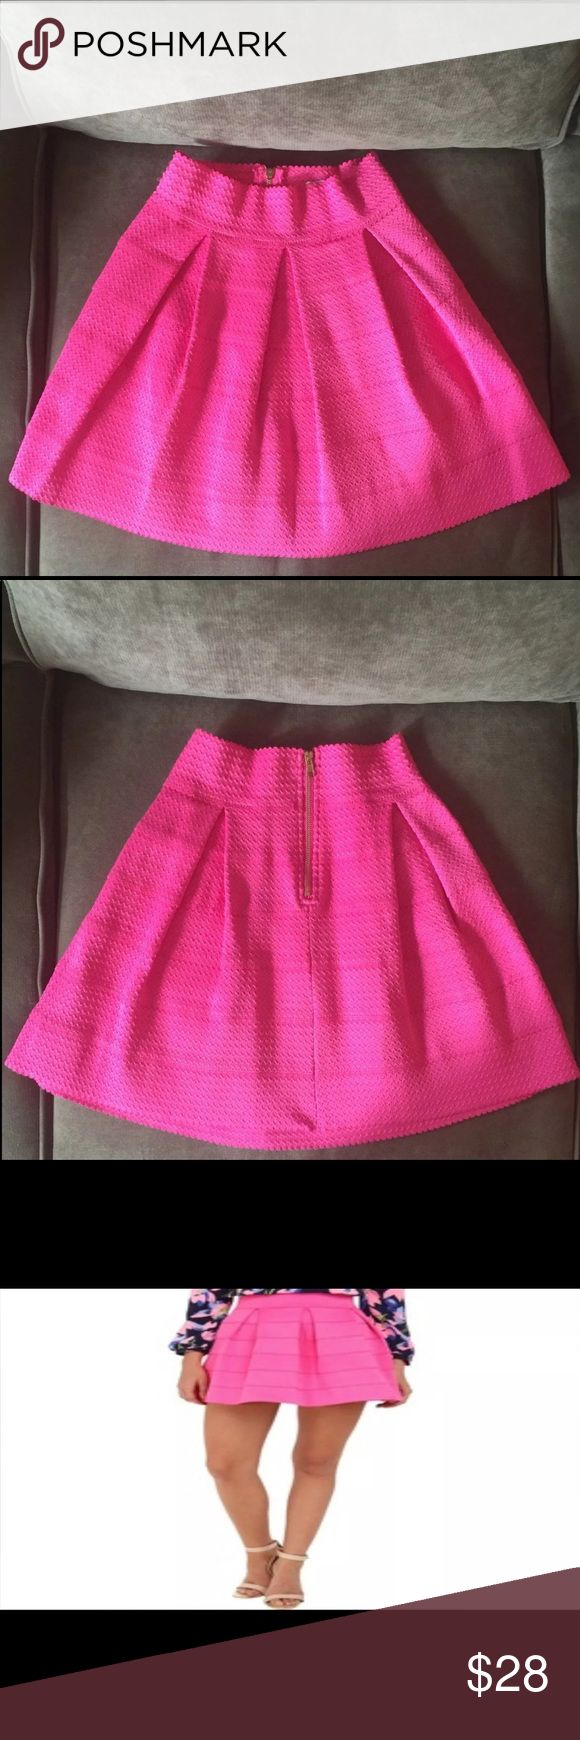 Gabriella Rocha Flared Skirt- Pink Like new! Loved and purchased from 6pm.com, but never ended up wearing it. Now it's a bit tight on me. Very classy and feminine, can easily be dressed up or down. A classic style for spring or summer! Gabriella Rocha Skirts Circle & Skater